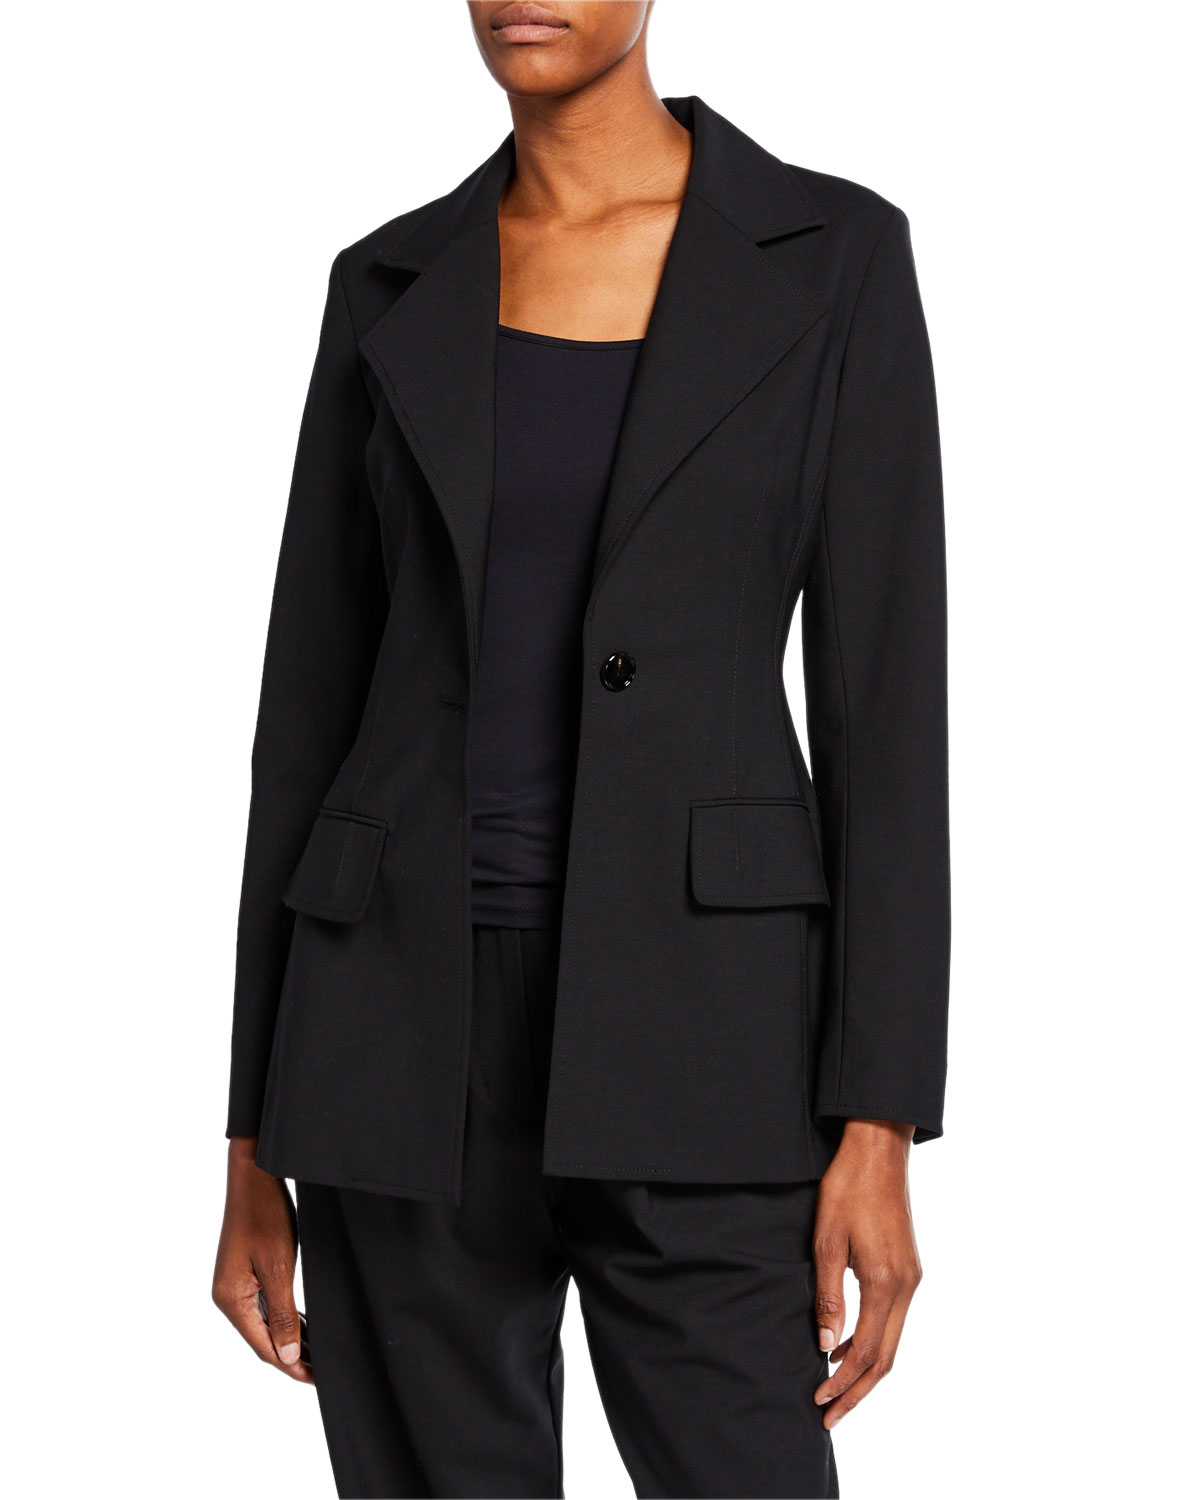 Co Blazers FITTED ONE-BUTTON BLAZER